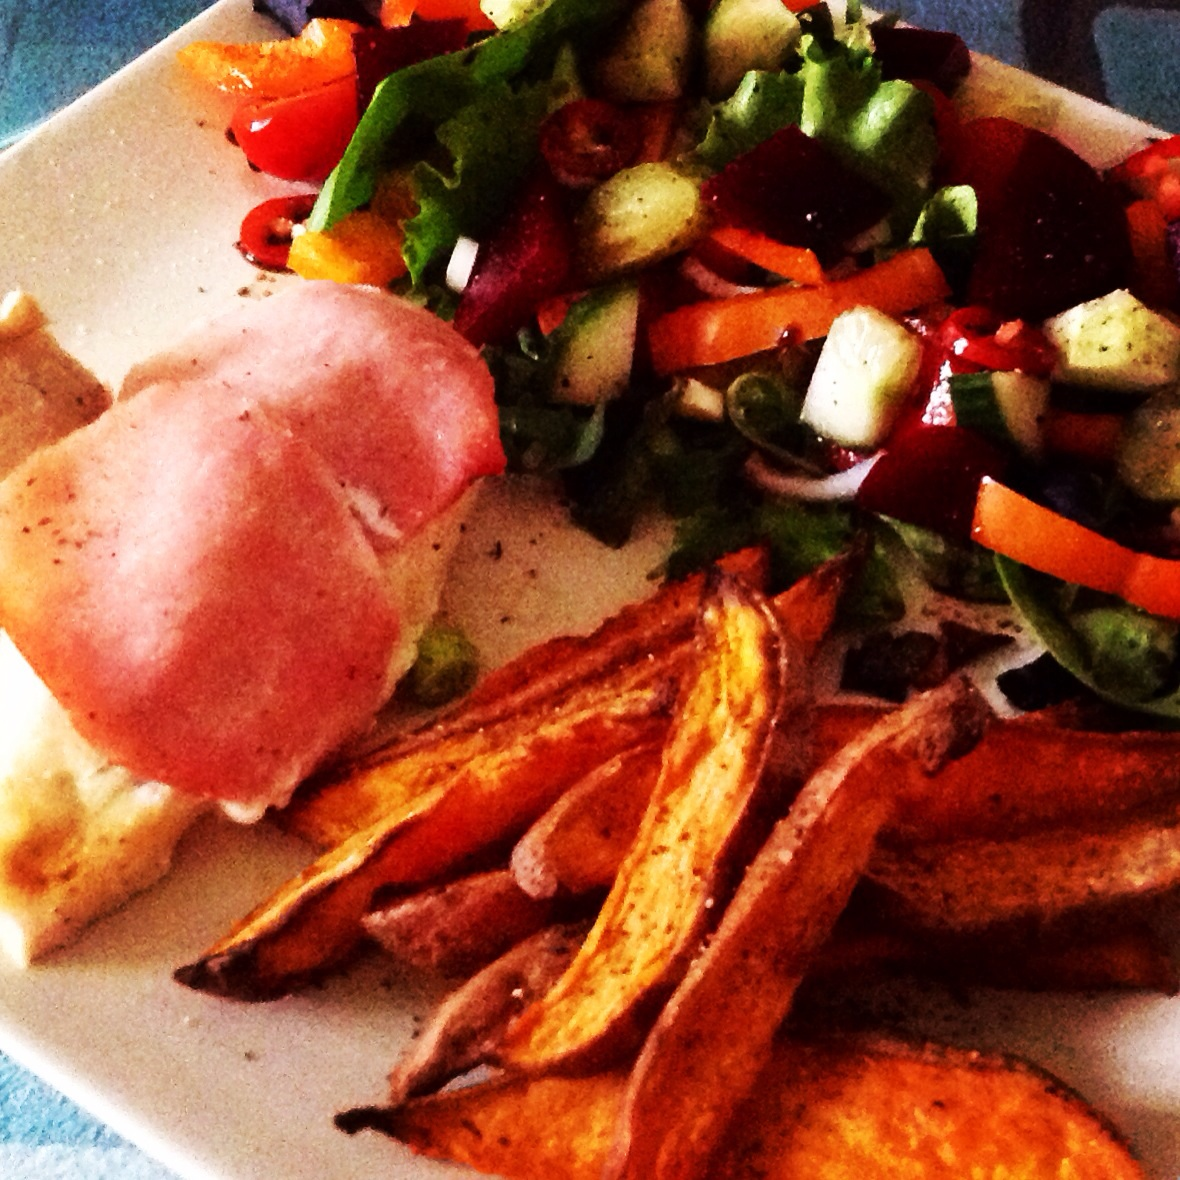 Chicken stuffed with quark and garlic wrapped in bacon, sweet potato chips and salad